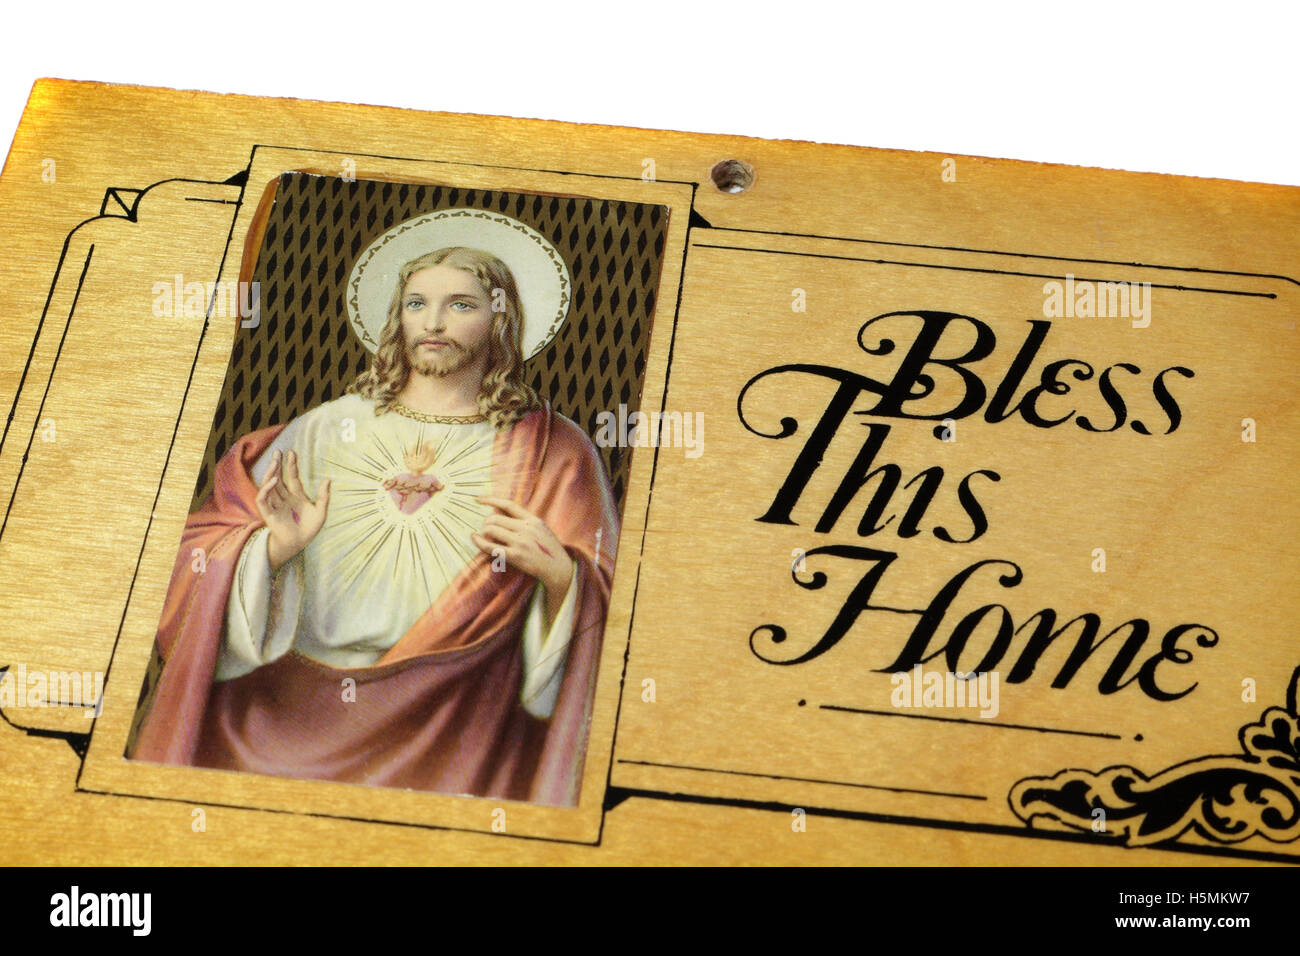 Bless Our Home Stock Photos & Bless Our Home Stock Images - Alamy